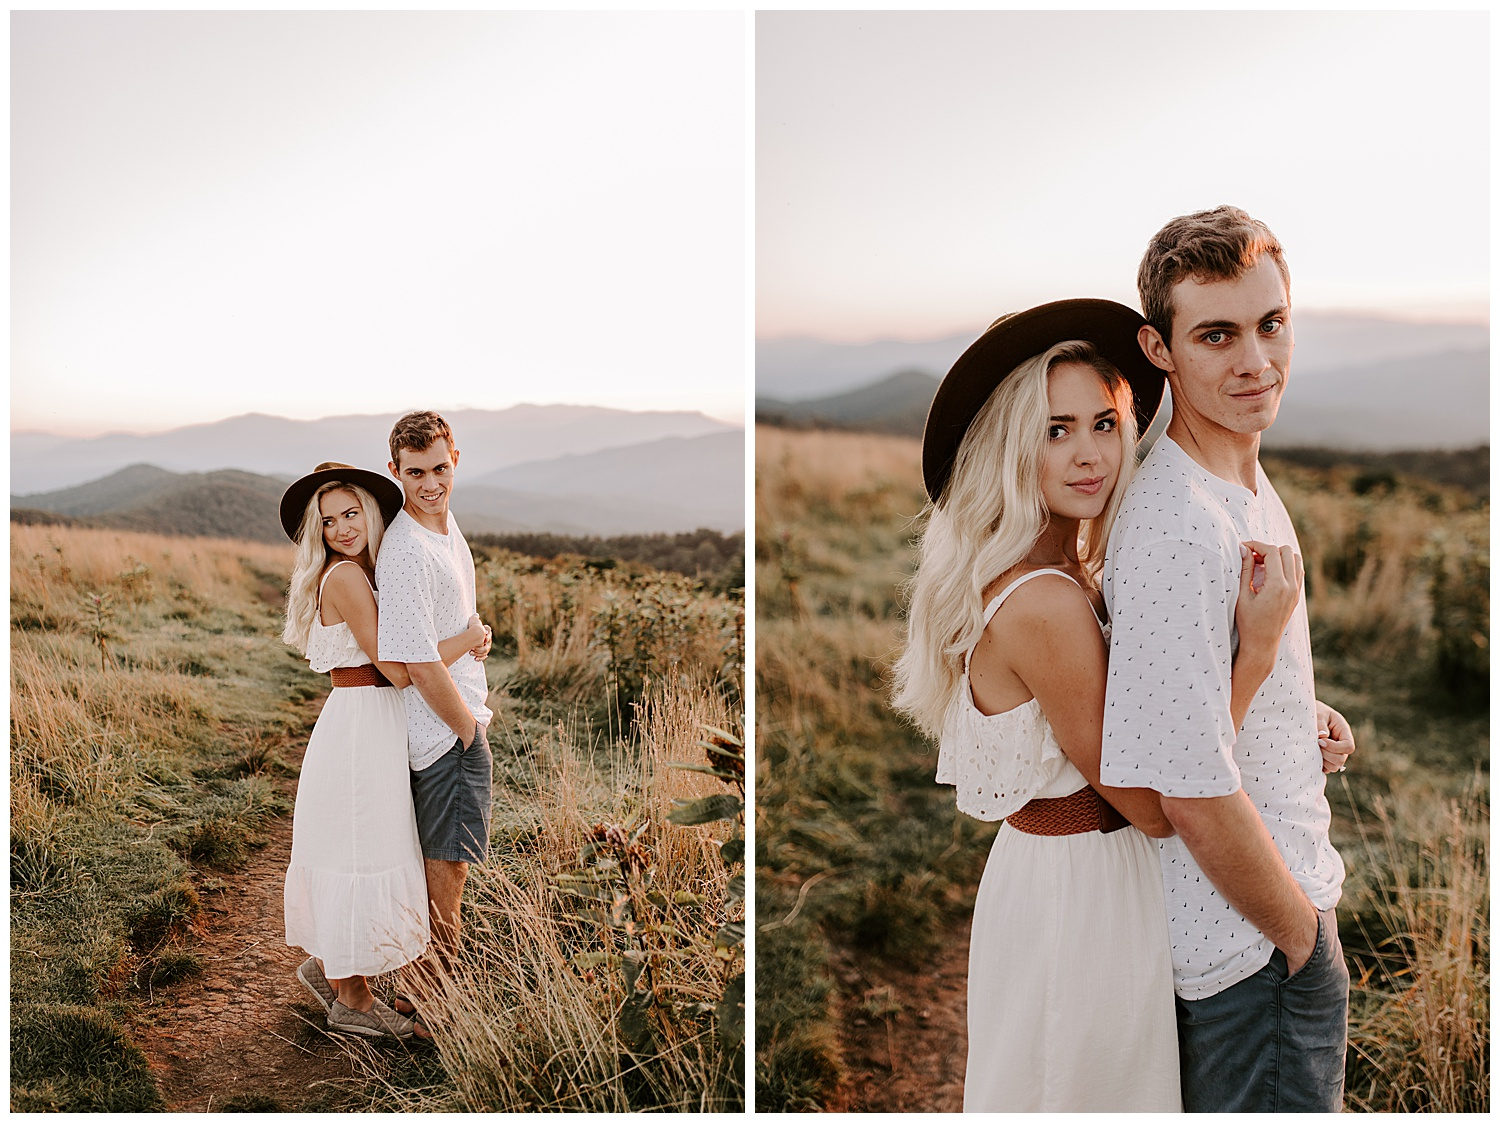 HANNAH_NICK_MAXPATCH_ENGAGEMENT2019-09-05_0032.jpg